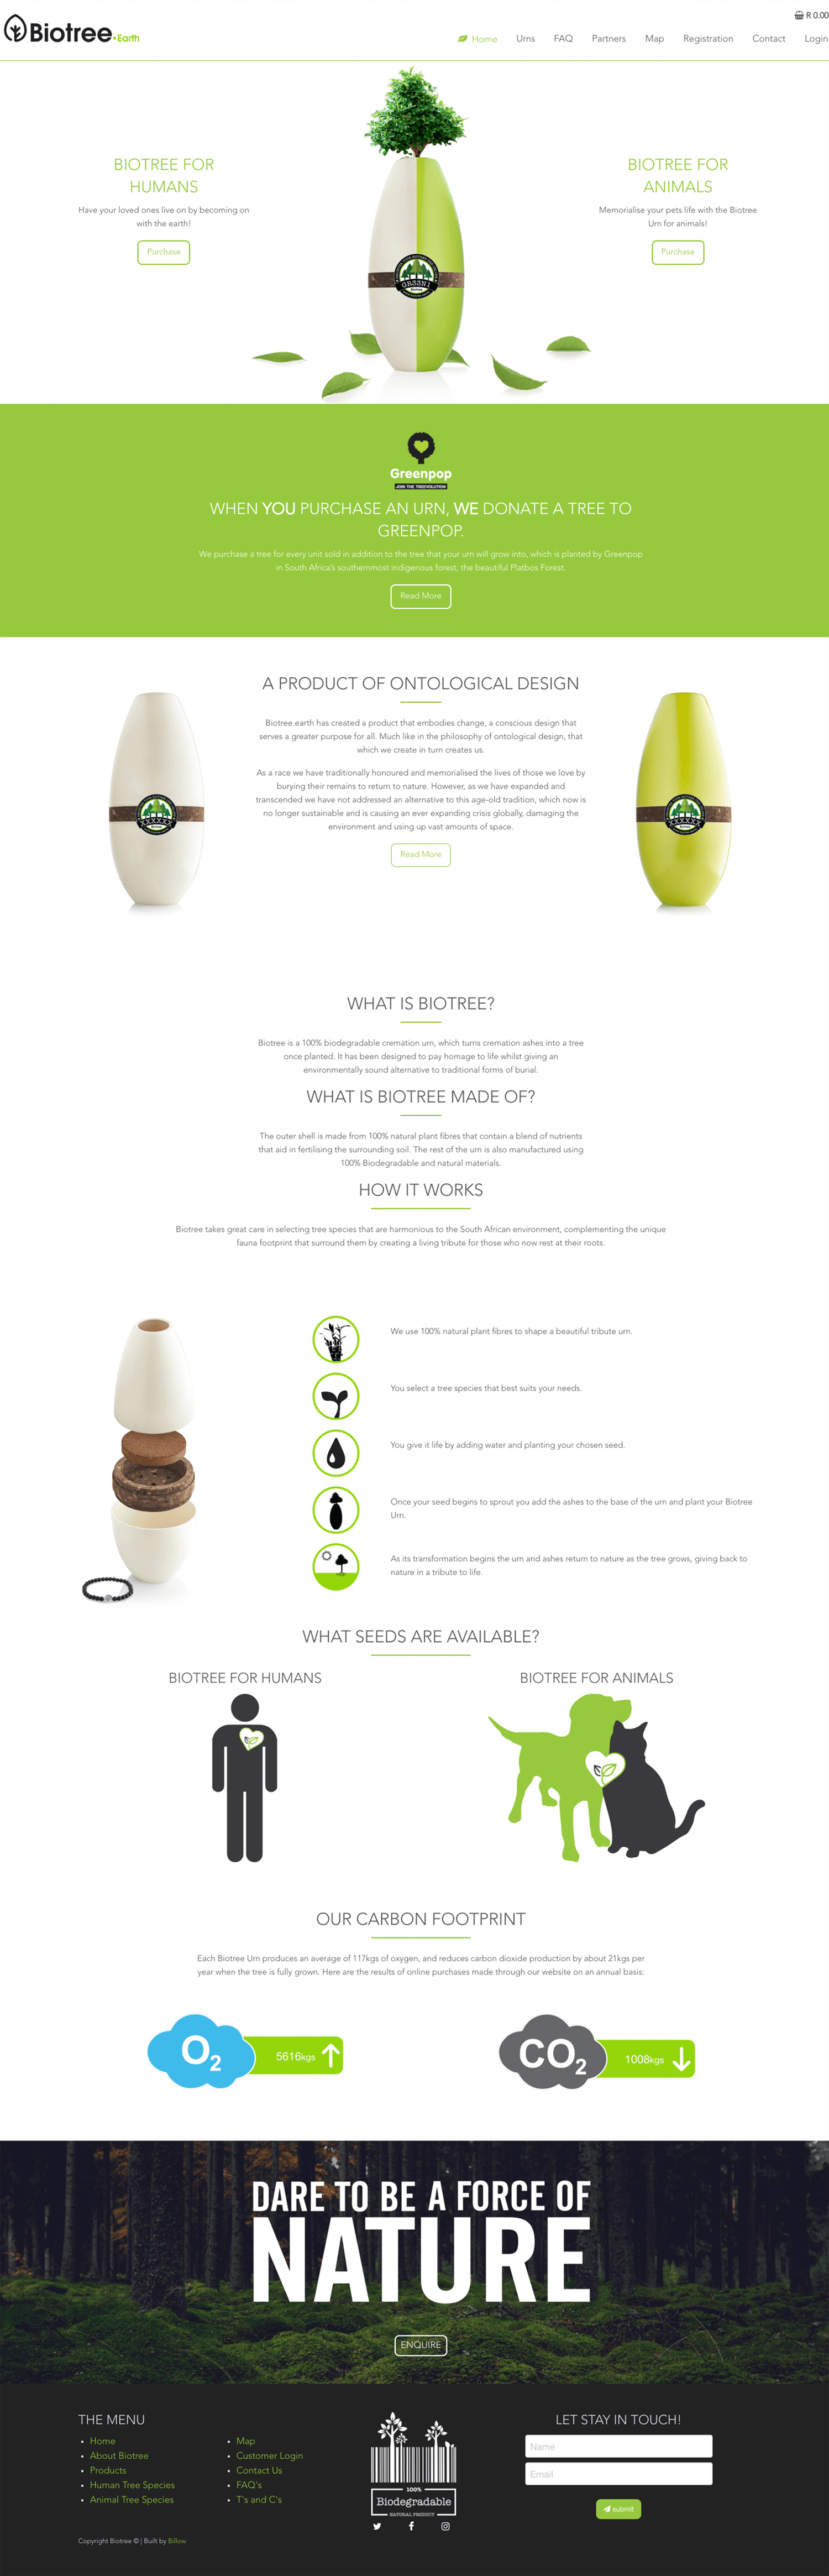 Biotree website by Billow